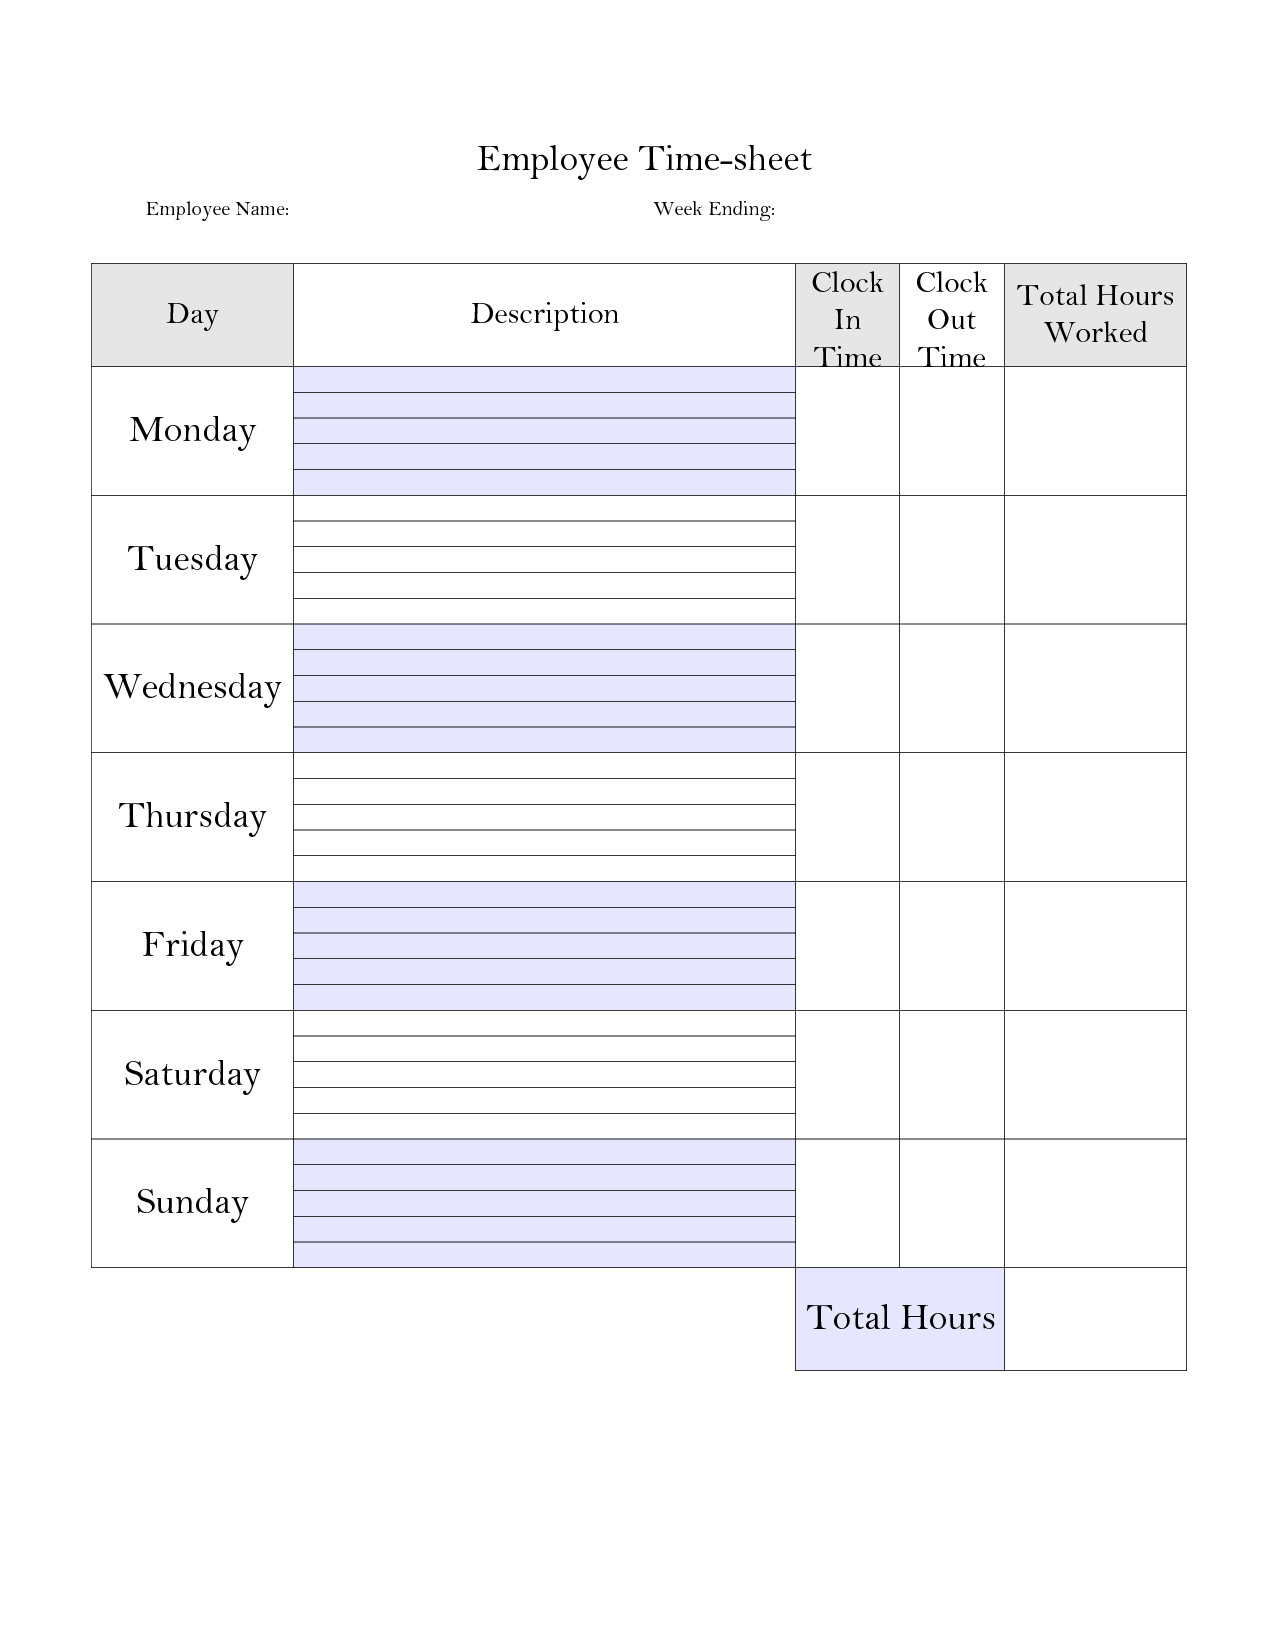 Time Tracking Spreadsheet and Printable Weekly Time Sheet Printable Timecard Time Sheets